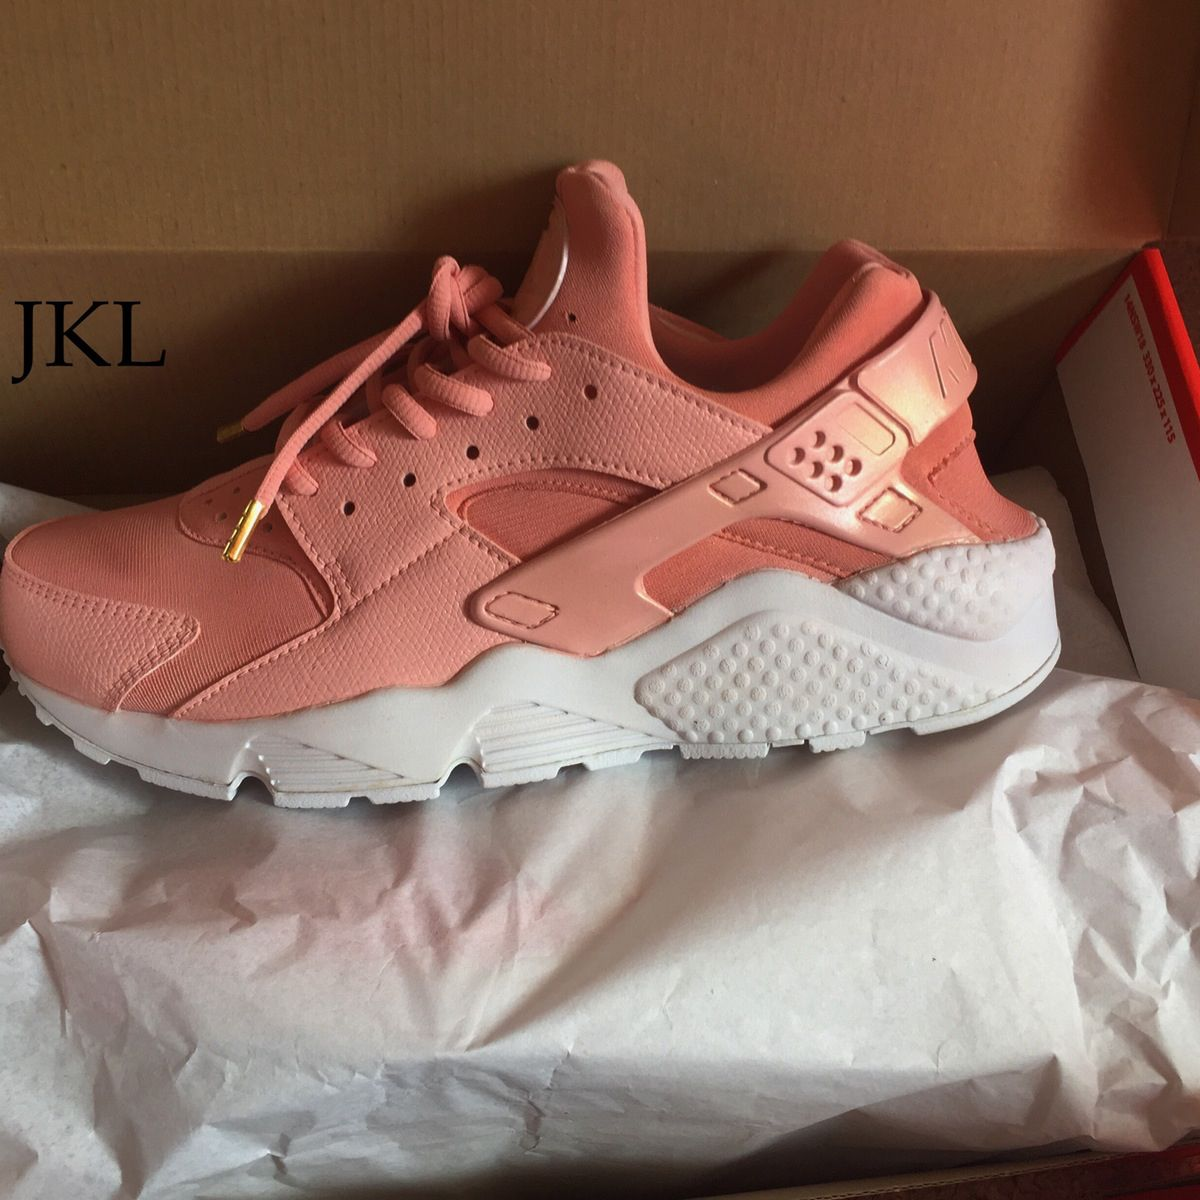 buy popular f2ec3 63351 Rose Gold Nike Huarache huaraches nikehuarache huarache rosegold  fashion